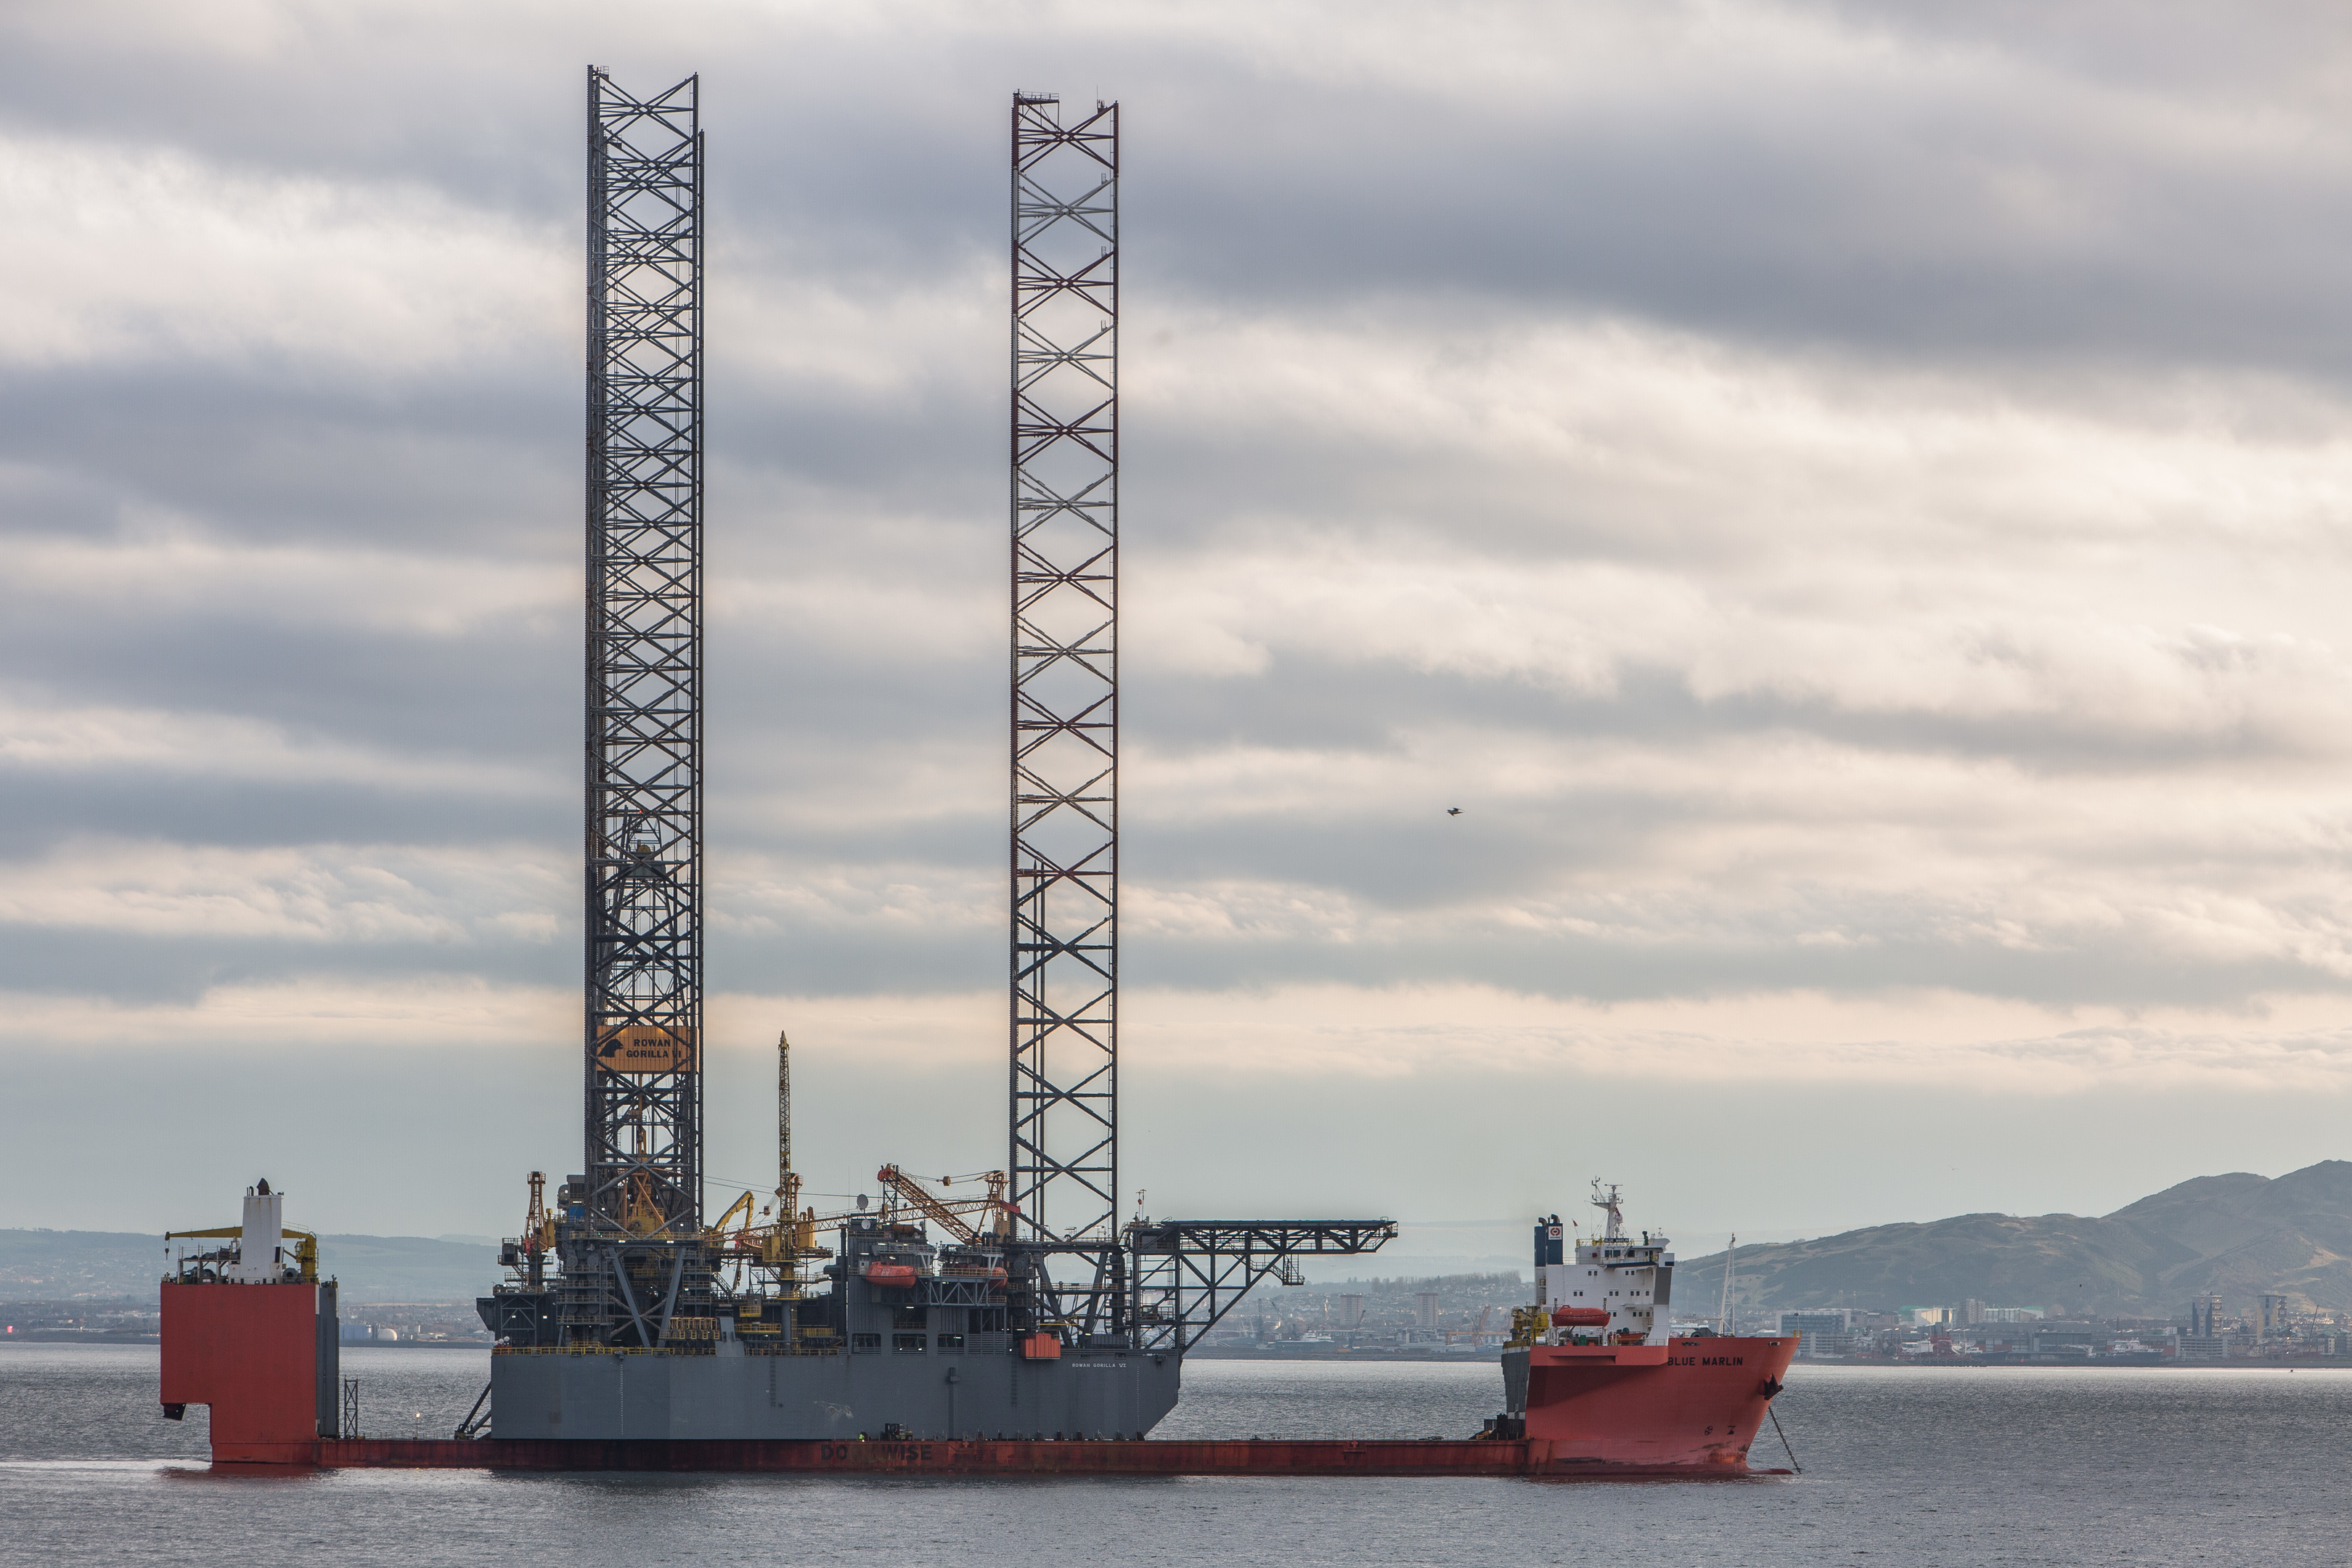 The ship MV Blue Marlin at anchor in the Firth of Forth.